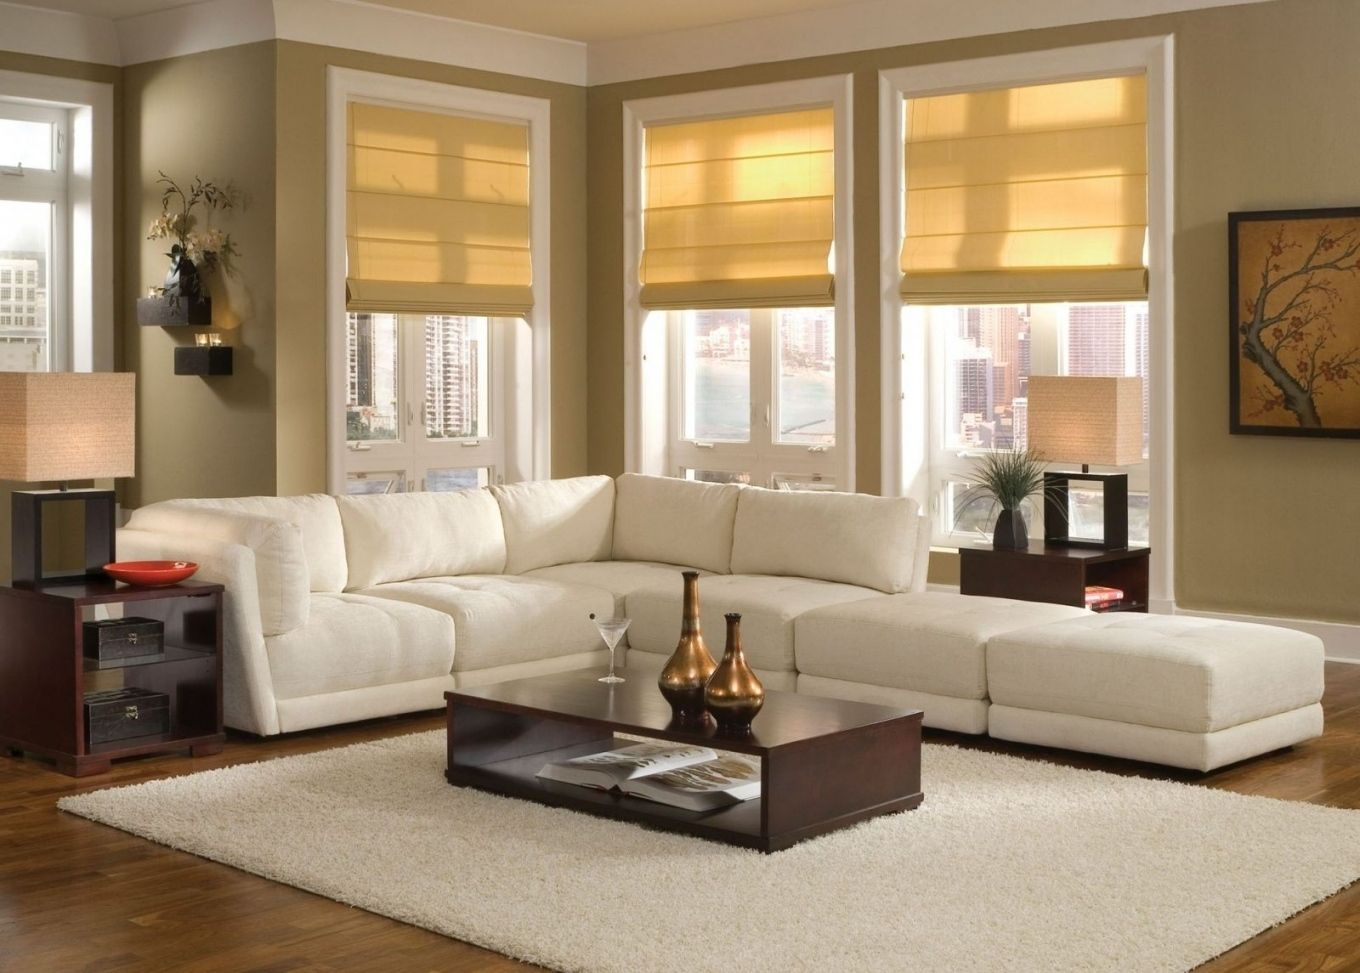 100 Small Scale Furniture For Living Room Best Paint Interior Check More At